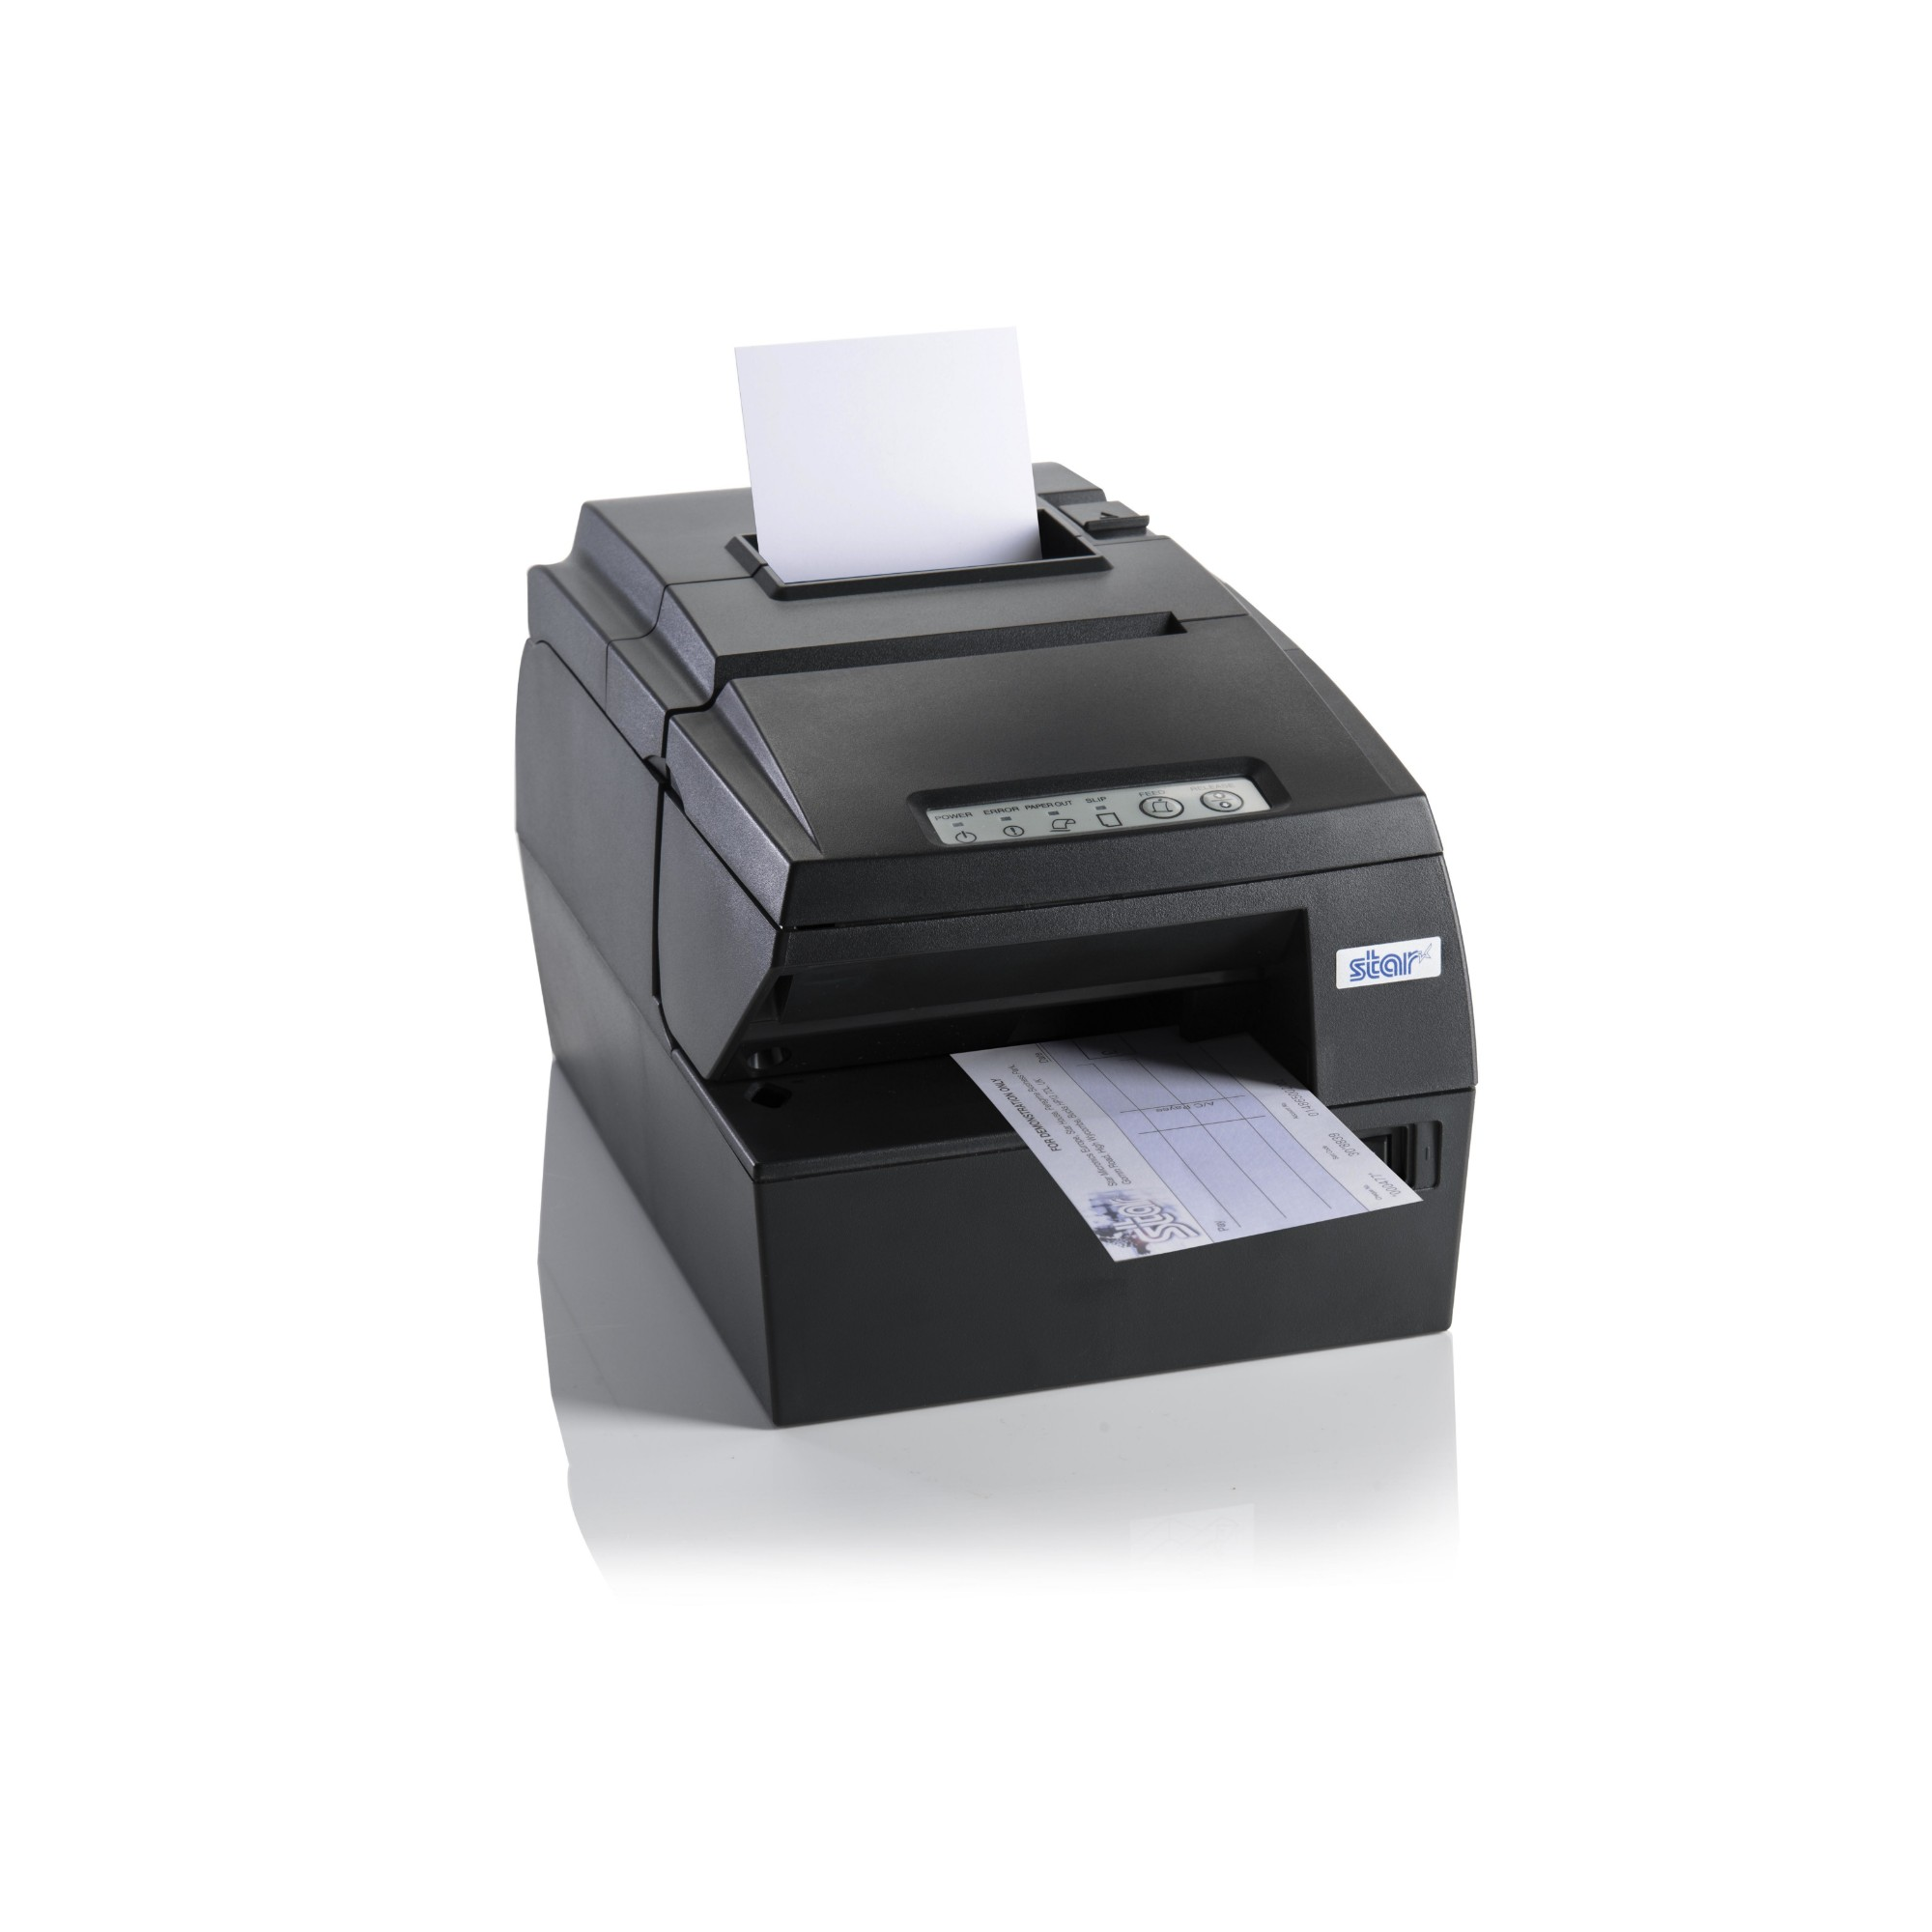 HSP7543-24 - Hybrid Printer - Thermal / Matrix - No Interface - Grey